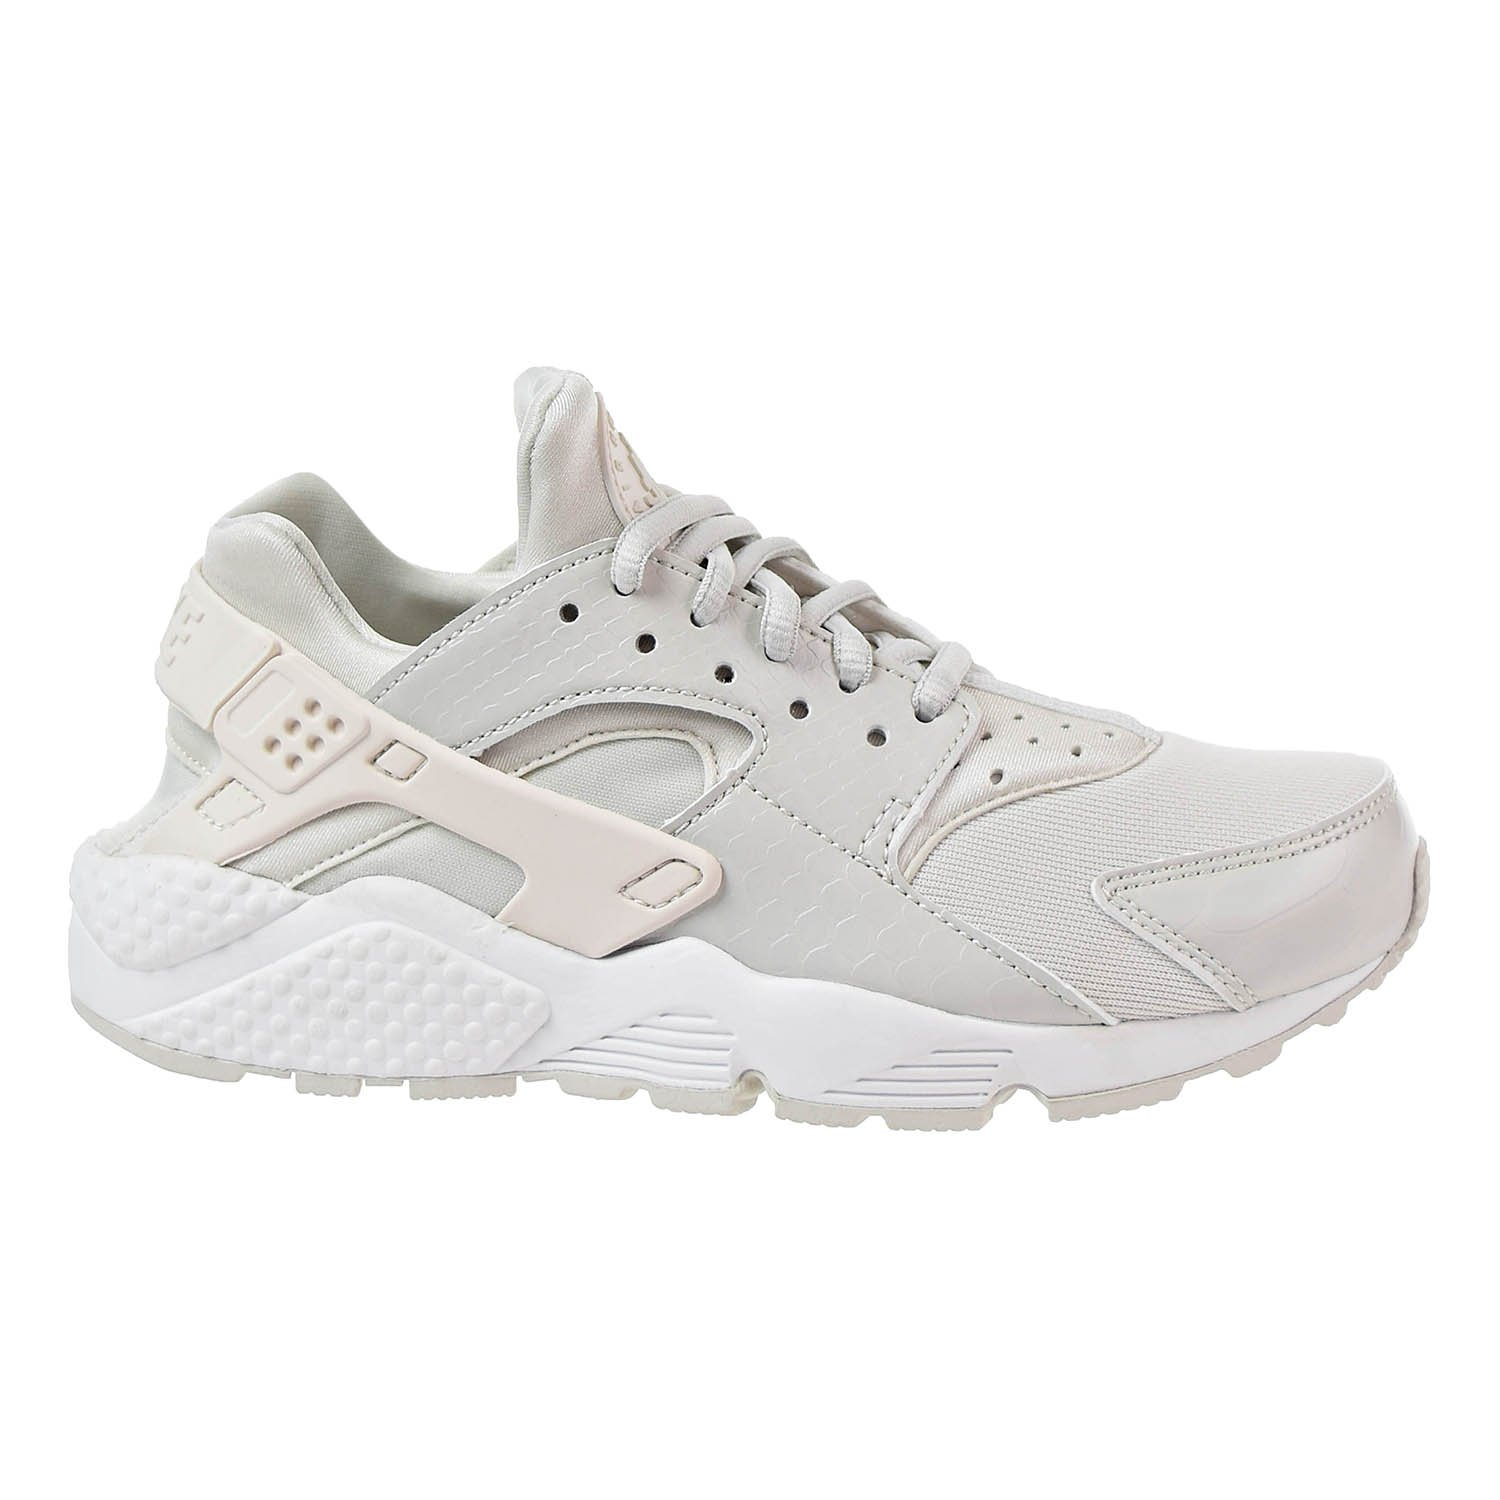 huge selection of 9a61a 0183f Galleon - NIKE Air Huarache Run Women s Running Shoes Phantom Light Bone  634835-028 (9.5 B(M) US)